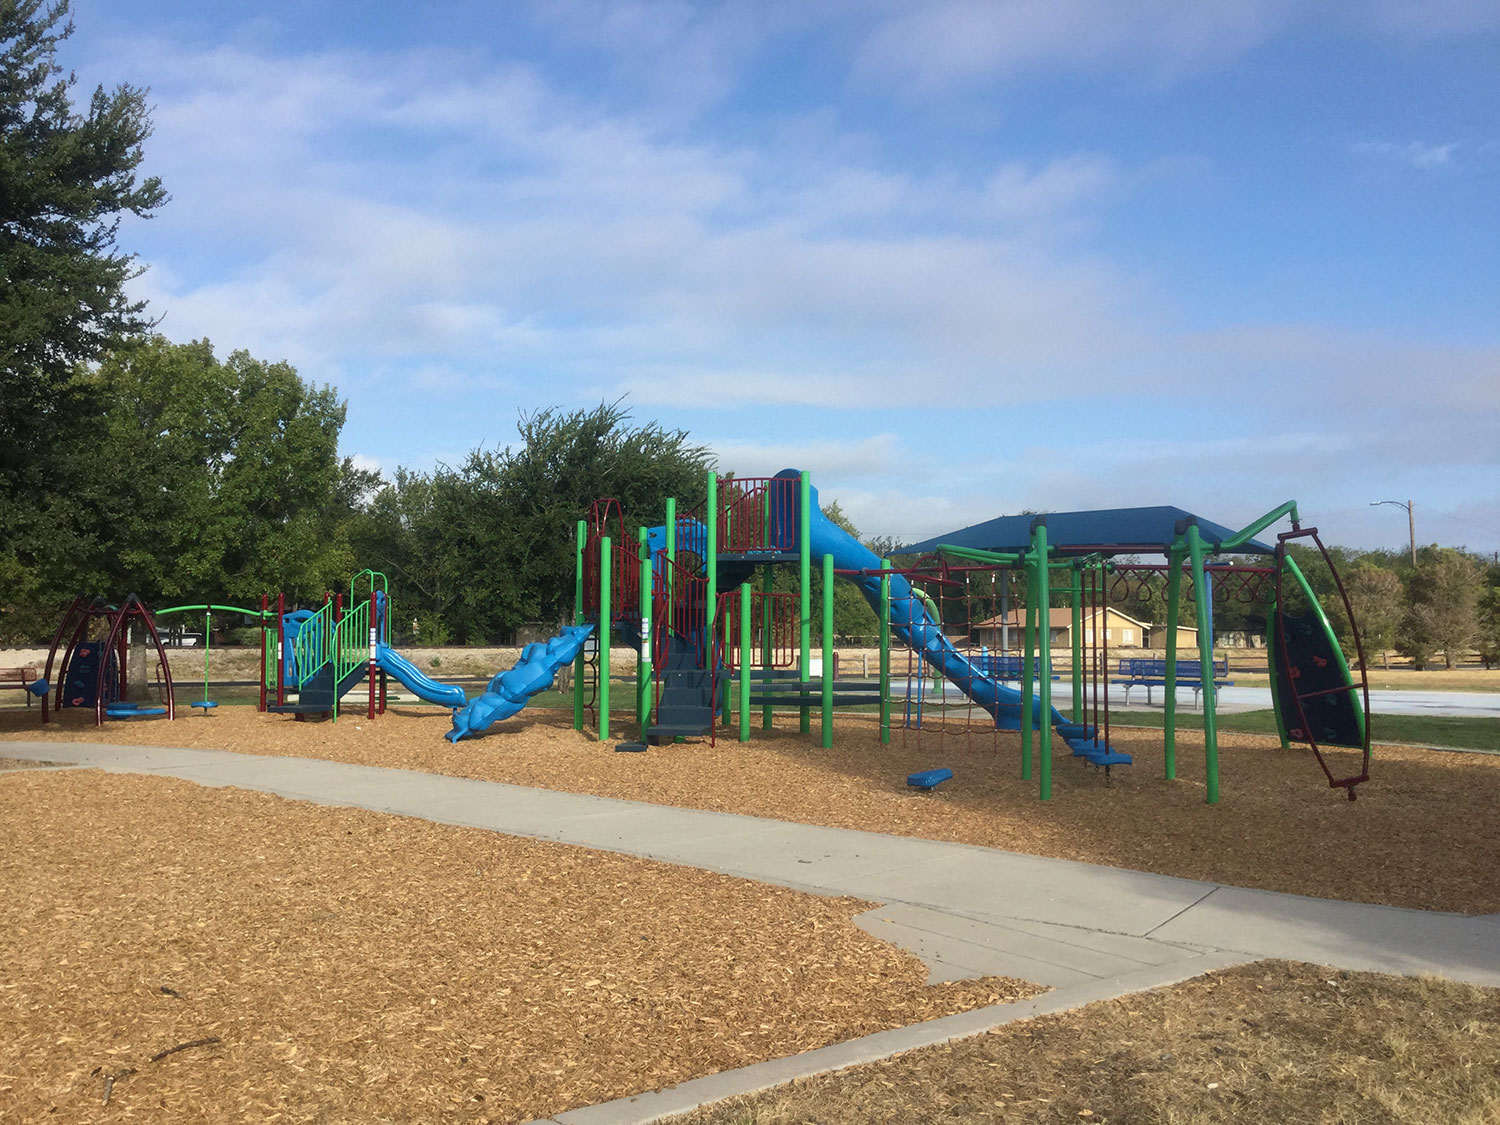 Playscape at San Jose Park in Georgetown, TX